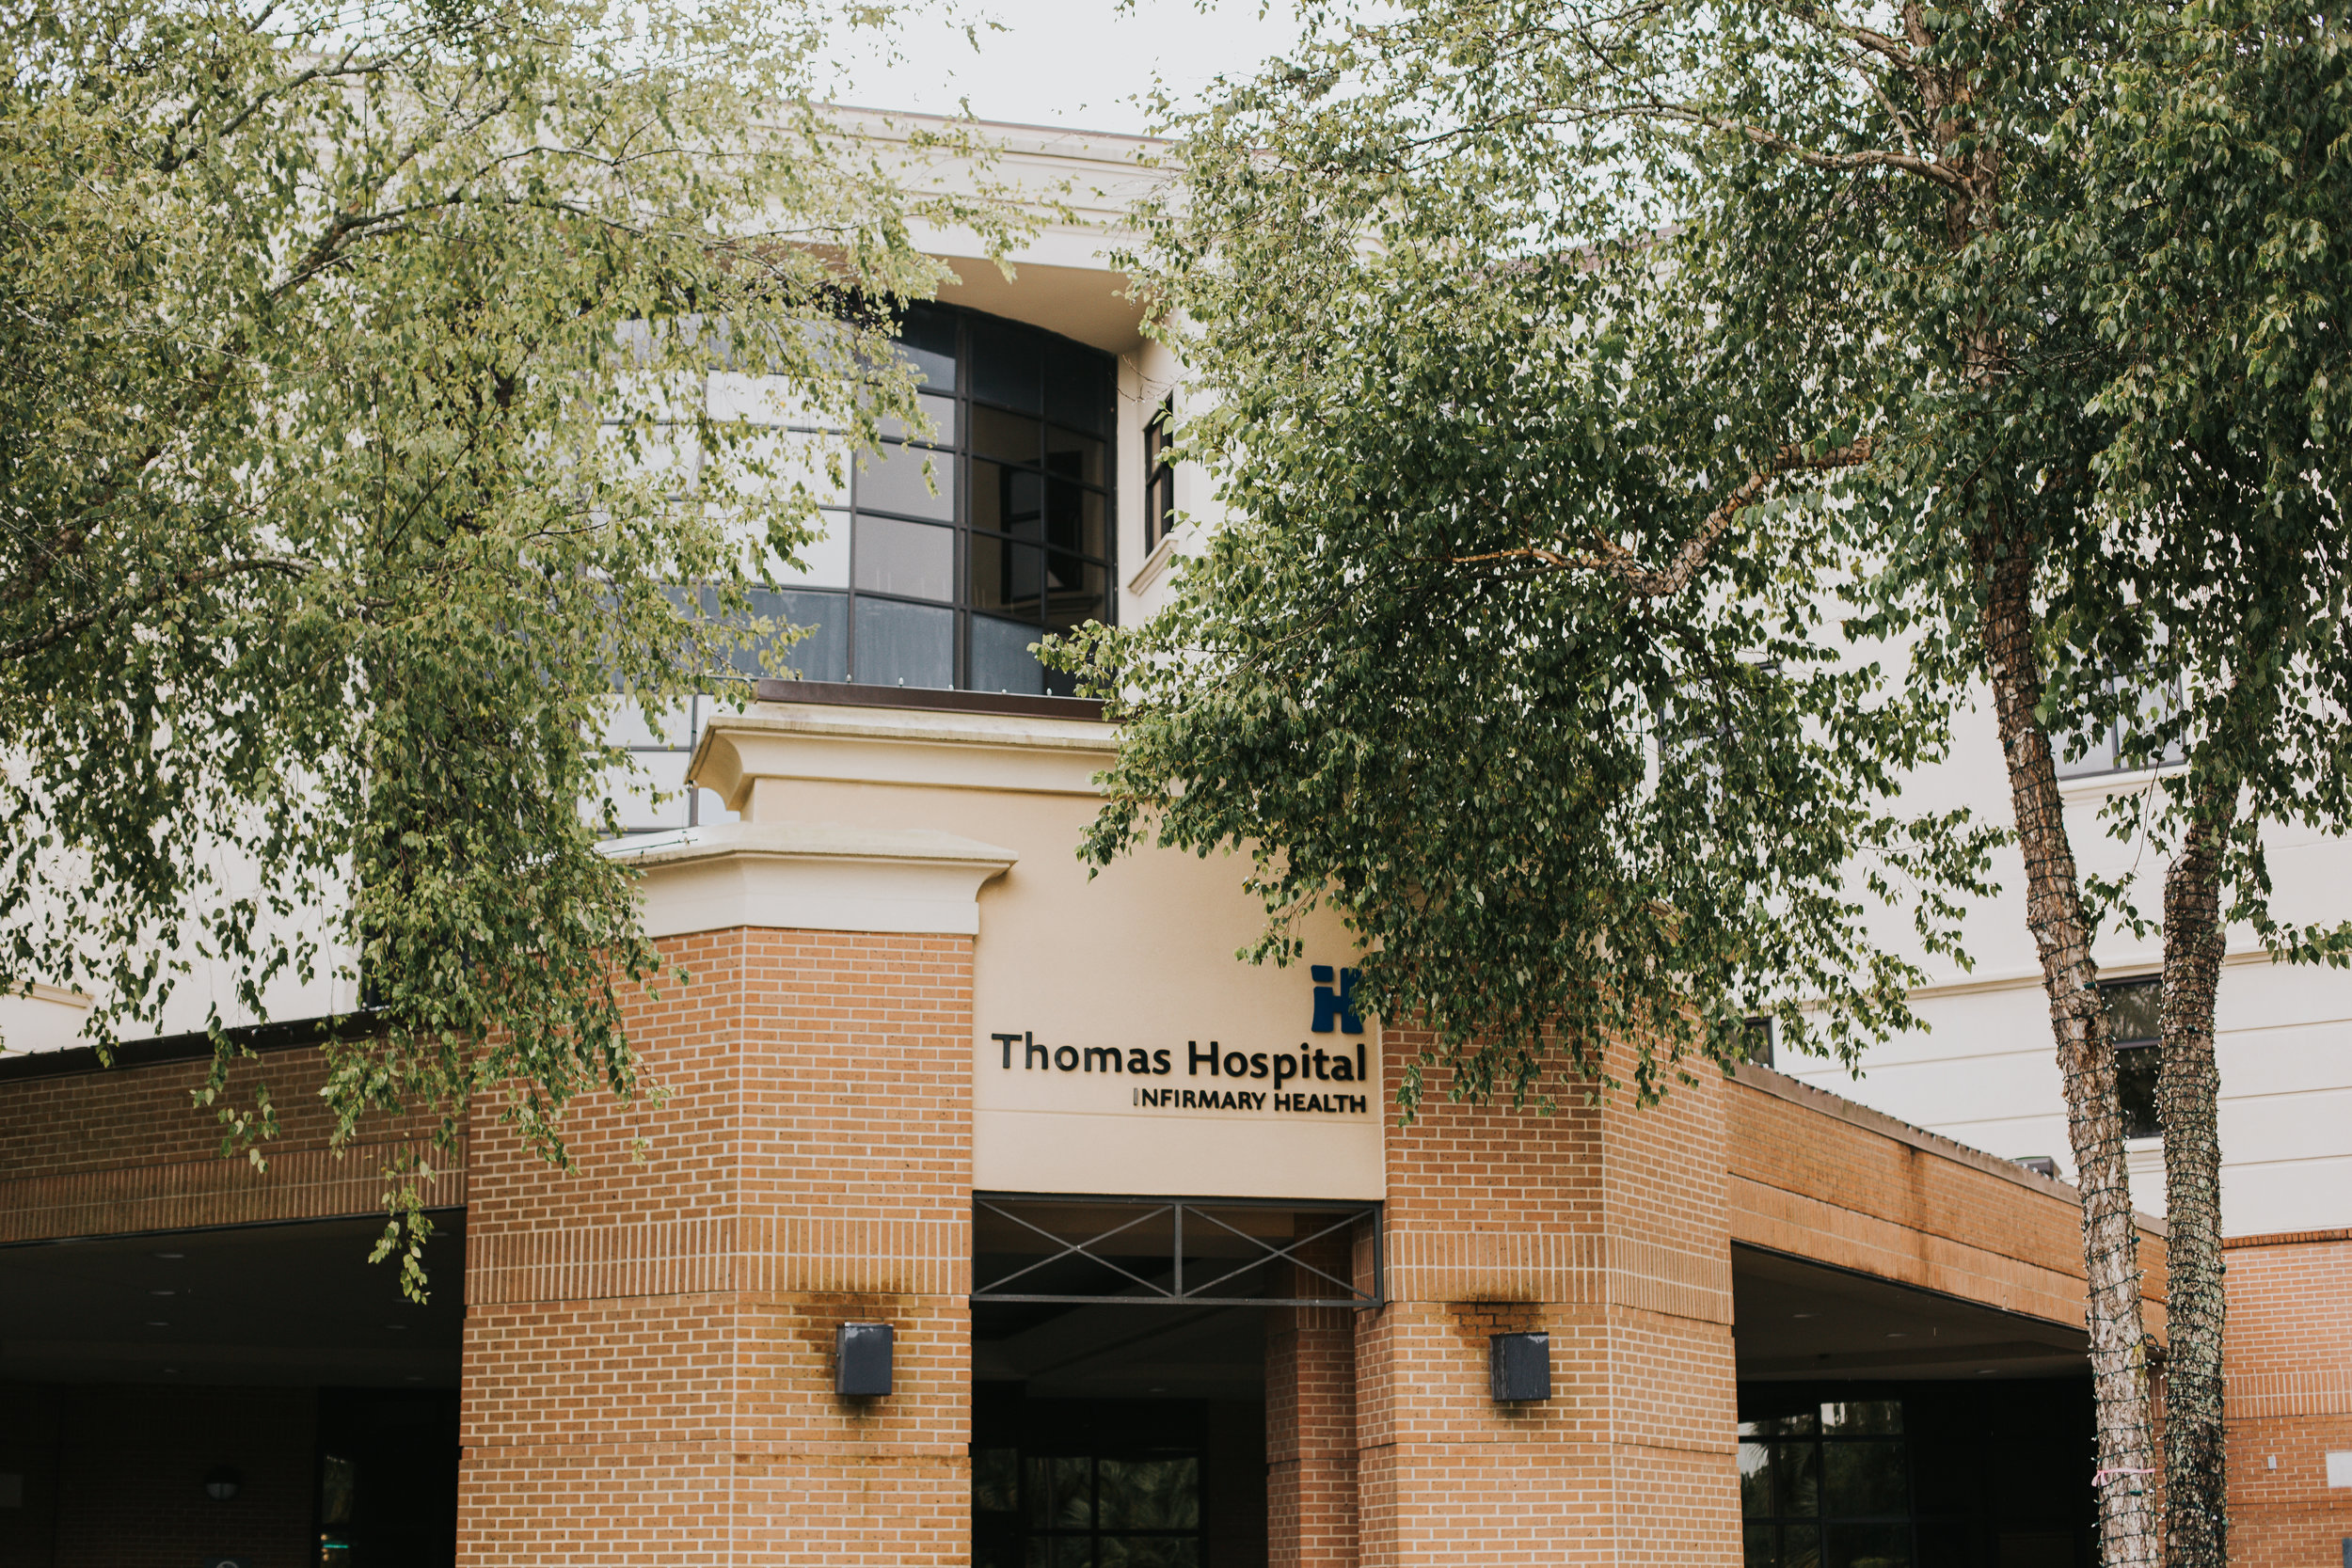 Thomas Hospital  in Fairhope, Alabama